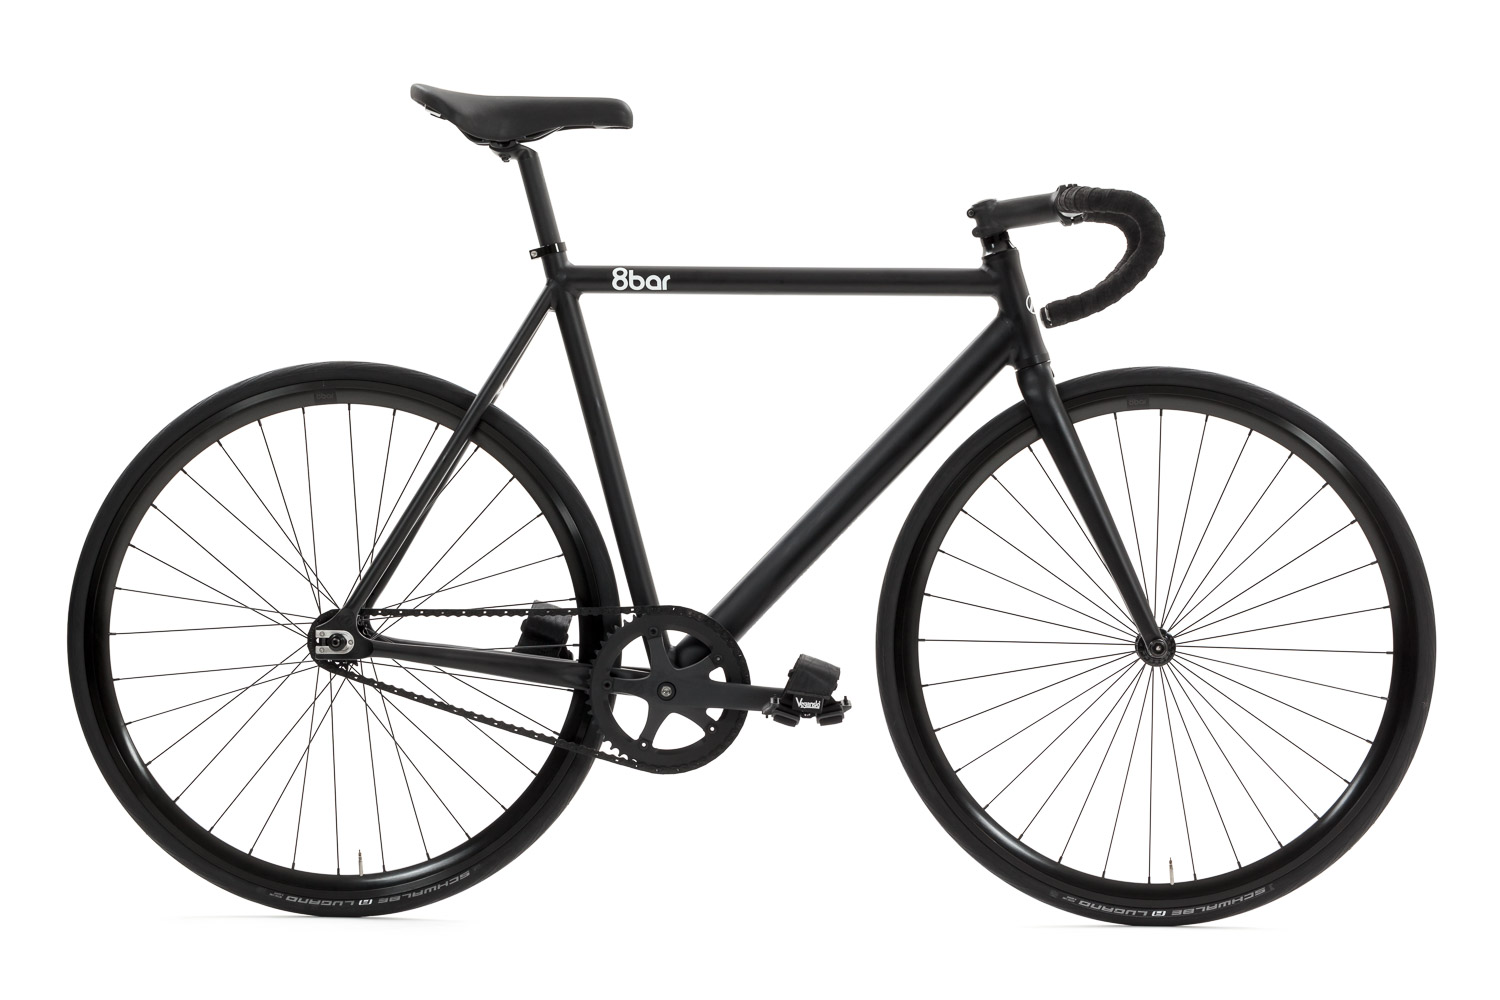 8bar-fhain-comp-black-drop-fixie-fixed-gear-1